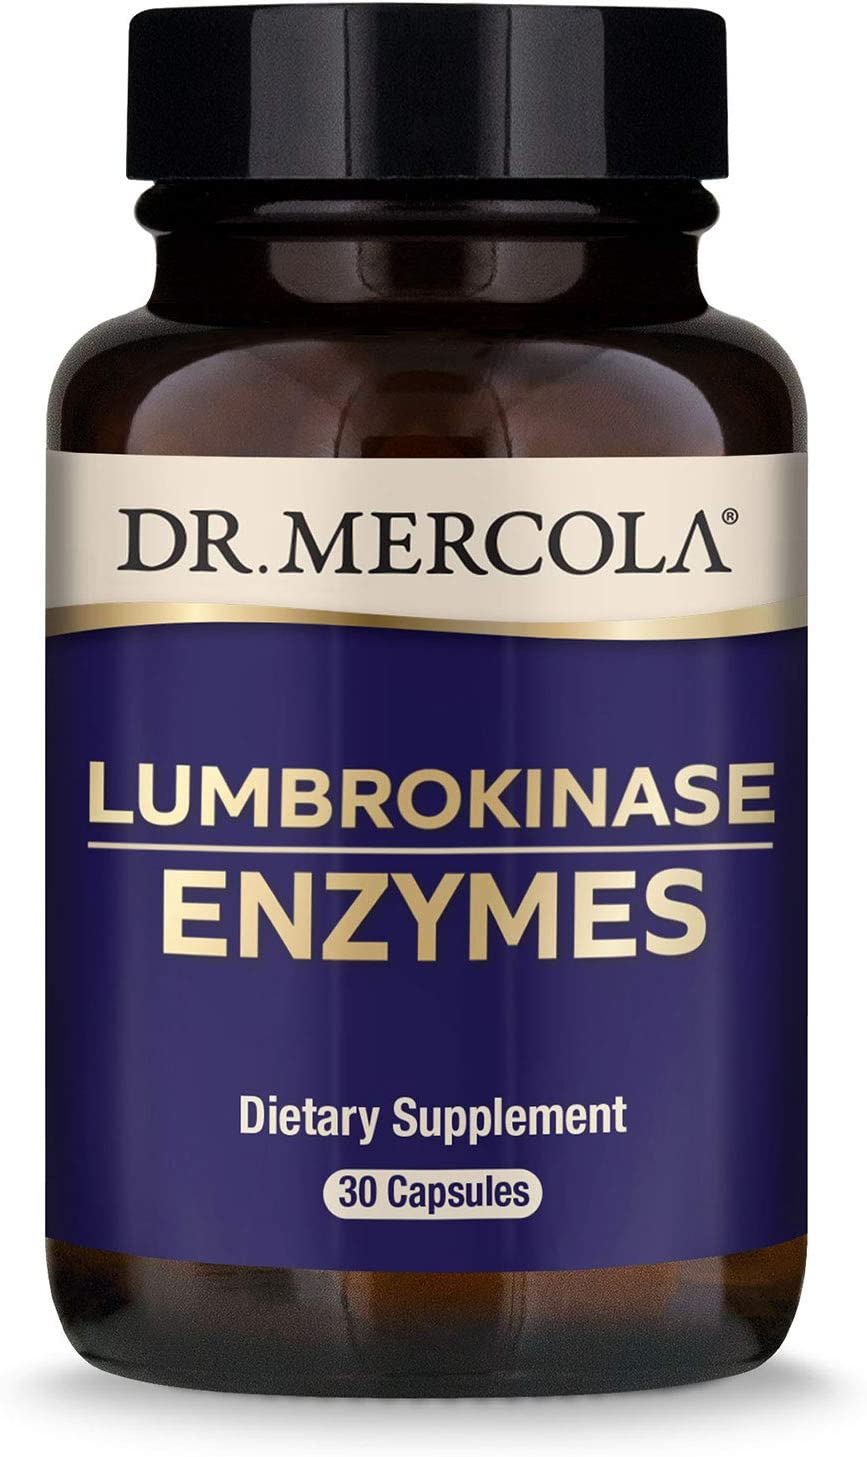 Dr. Mercola Lumbrokinase Enzymes Dietary Supplement, 30 Servings (30 Capsules), Supports Cognitive and Cardiovascular Health*, Non GMO, Soy Free, Gluten Free